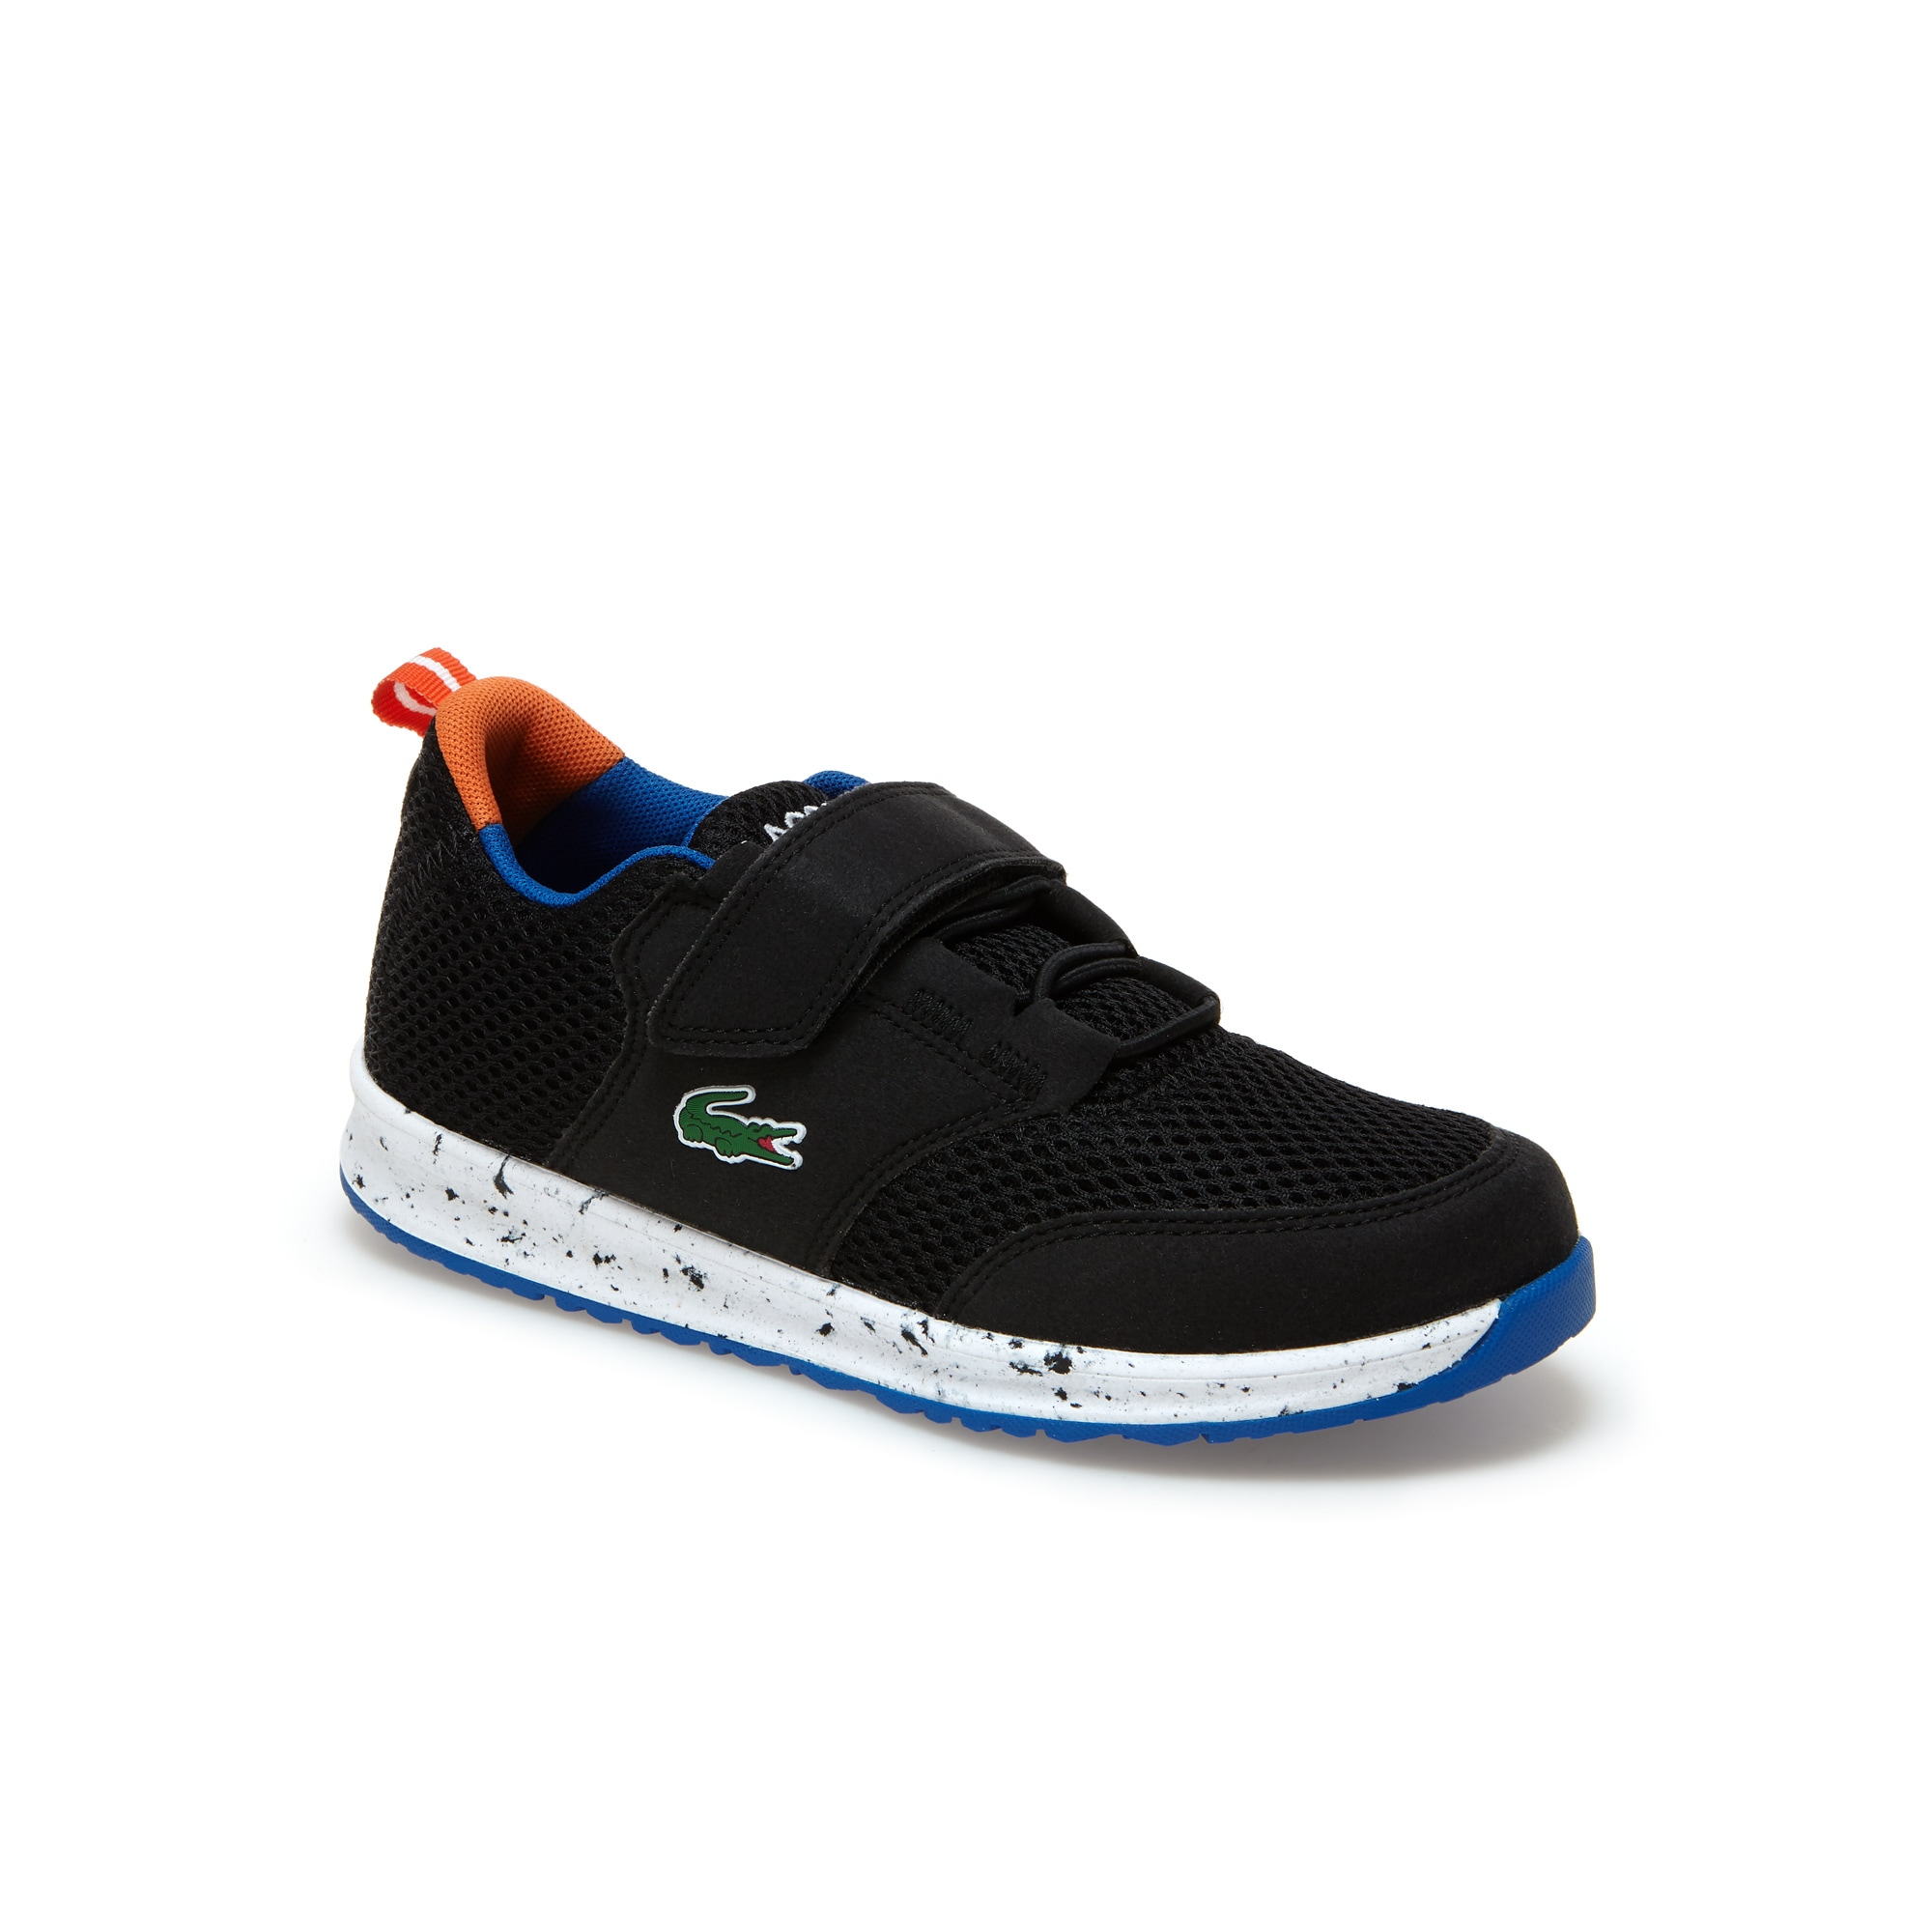 Childrens' L.ight Textile and Suede-look Trainers